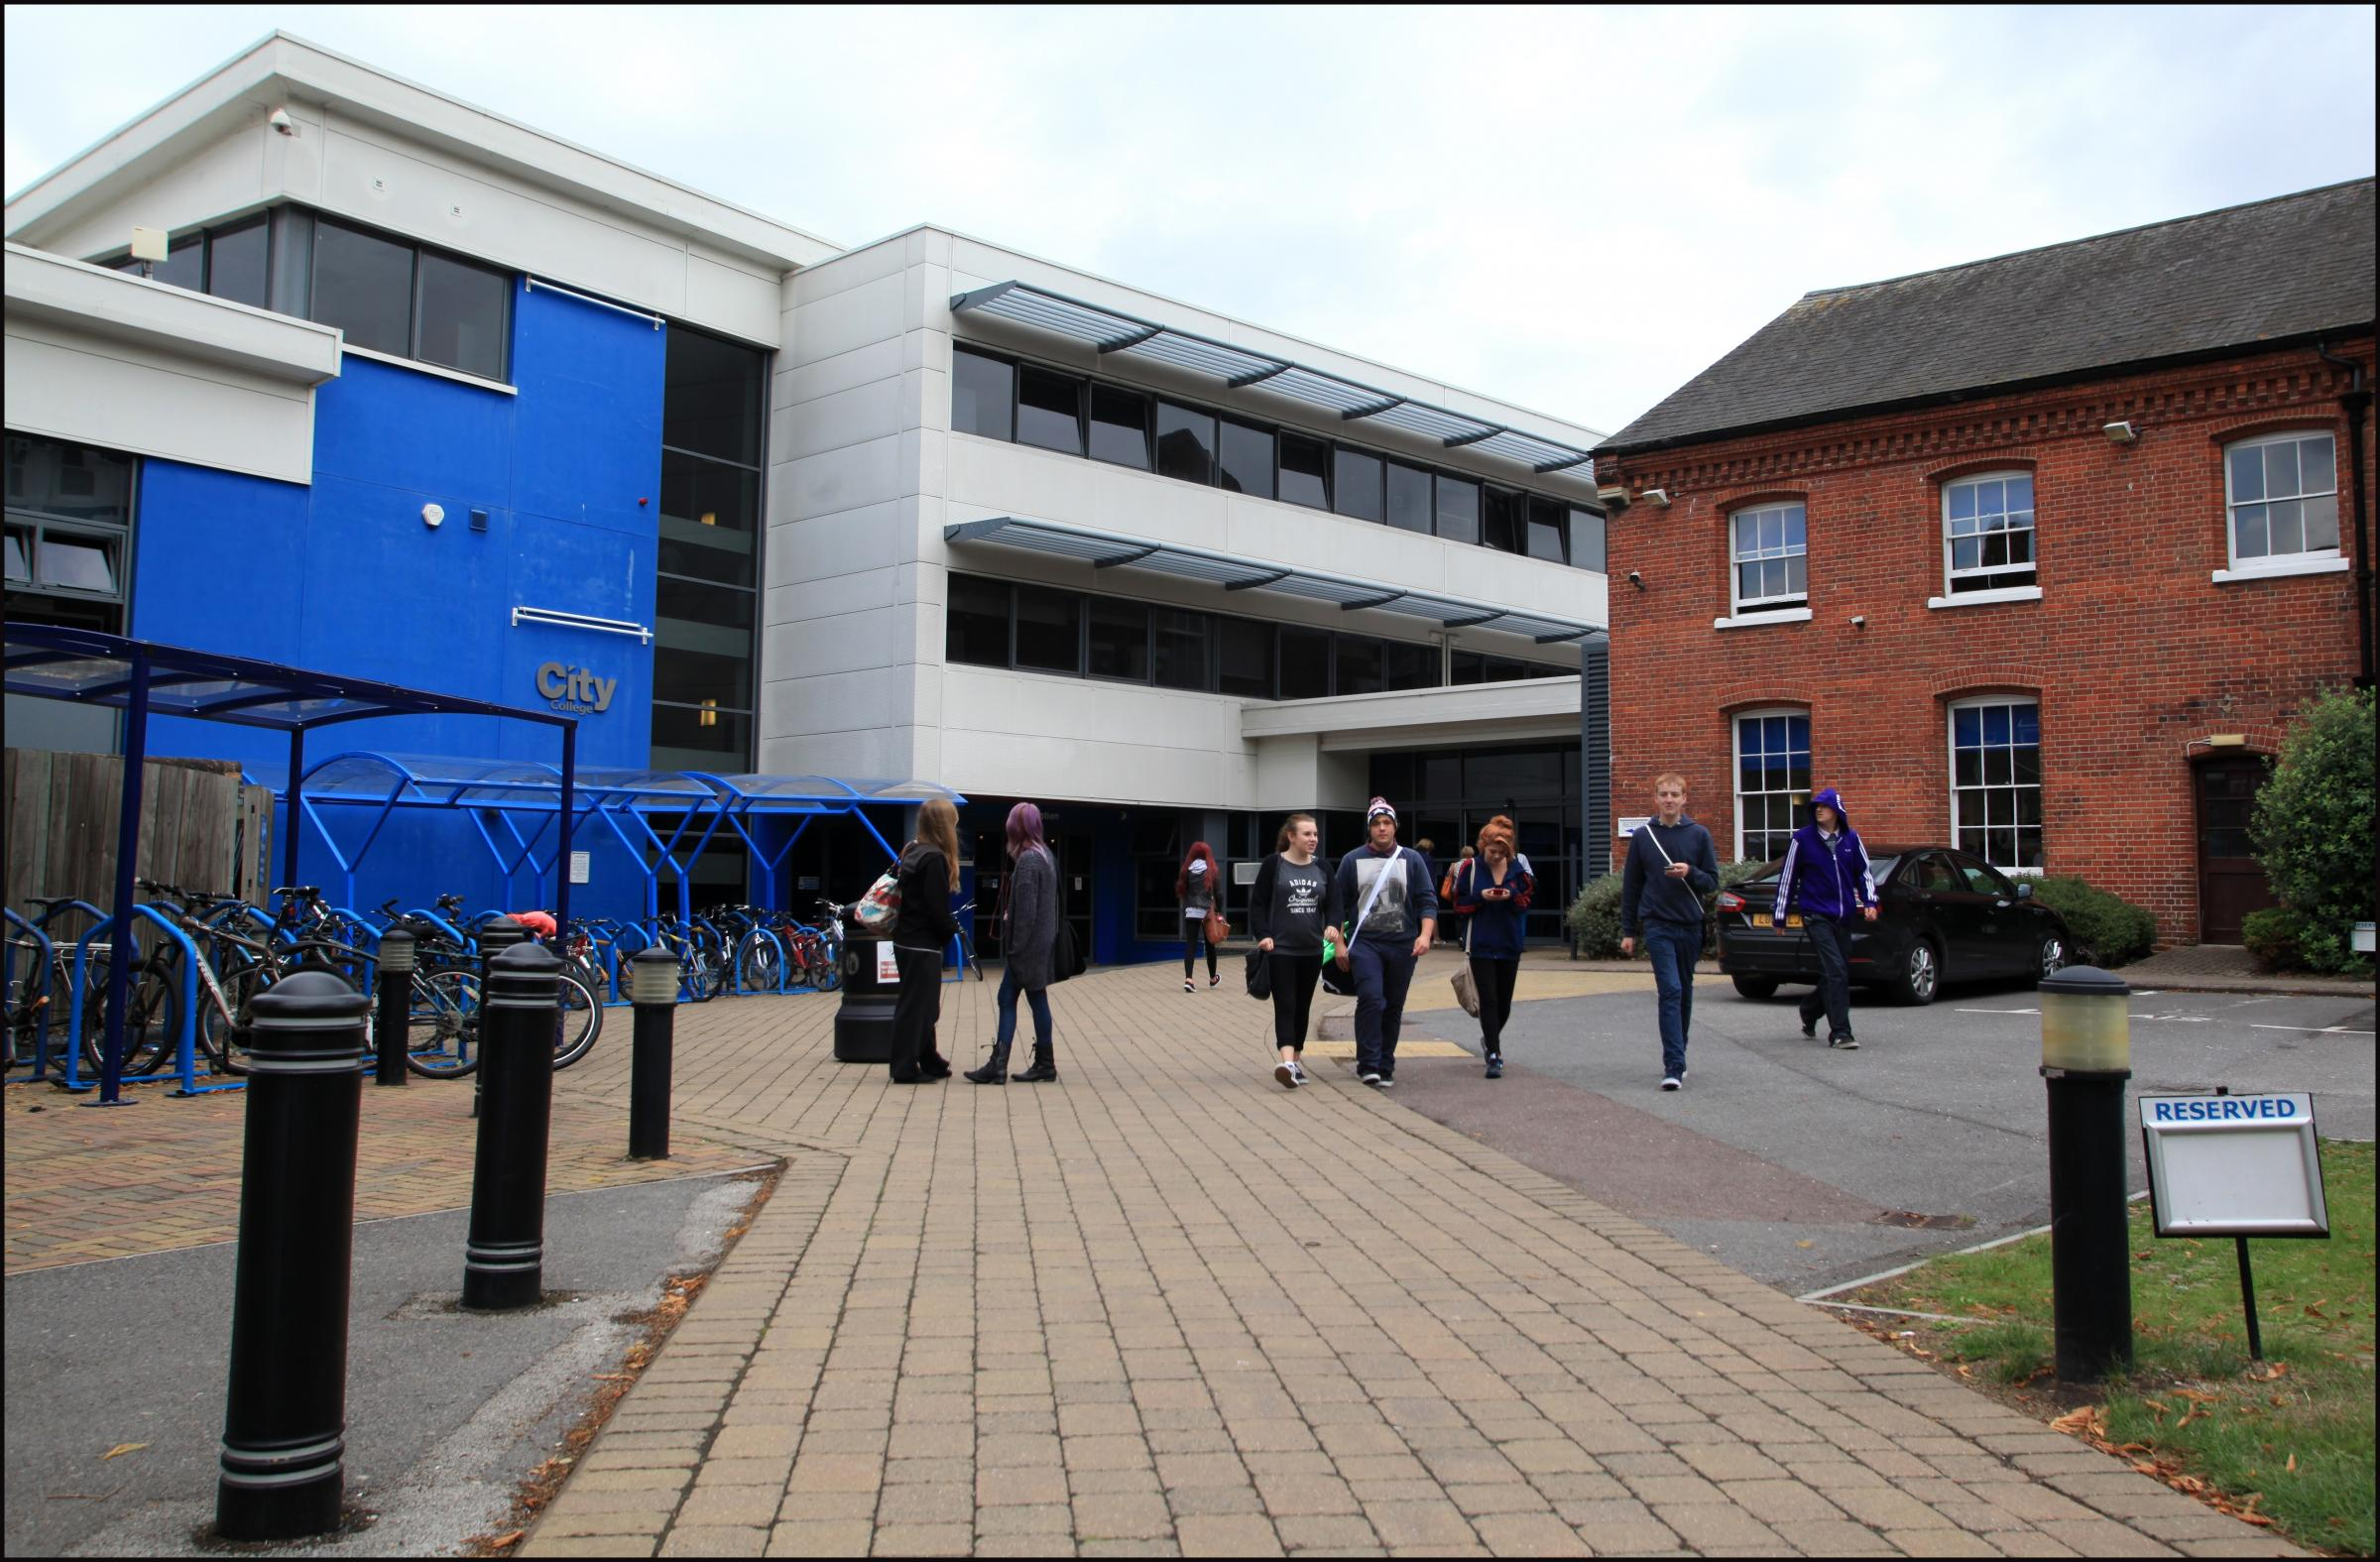 City College Southampton Itchen Sixth Form College And Richard Taunton Sixth Form Could Be Merged Daily Echo